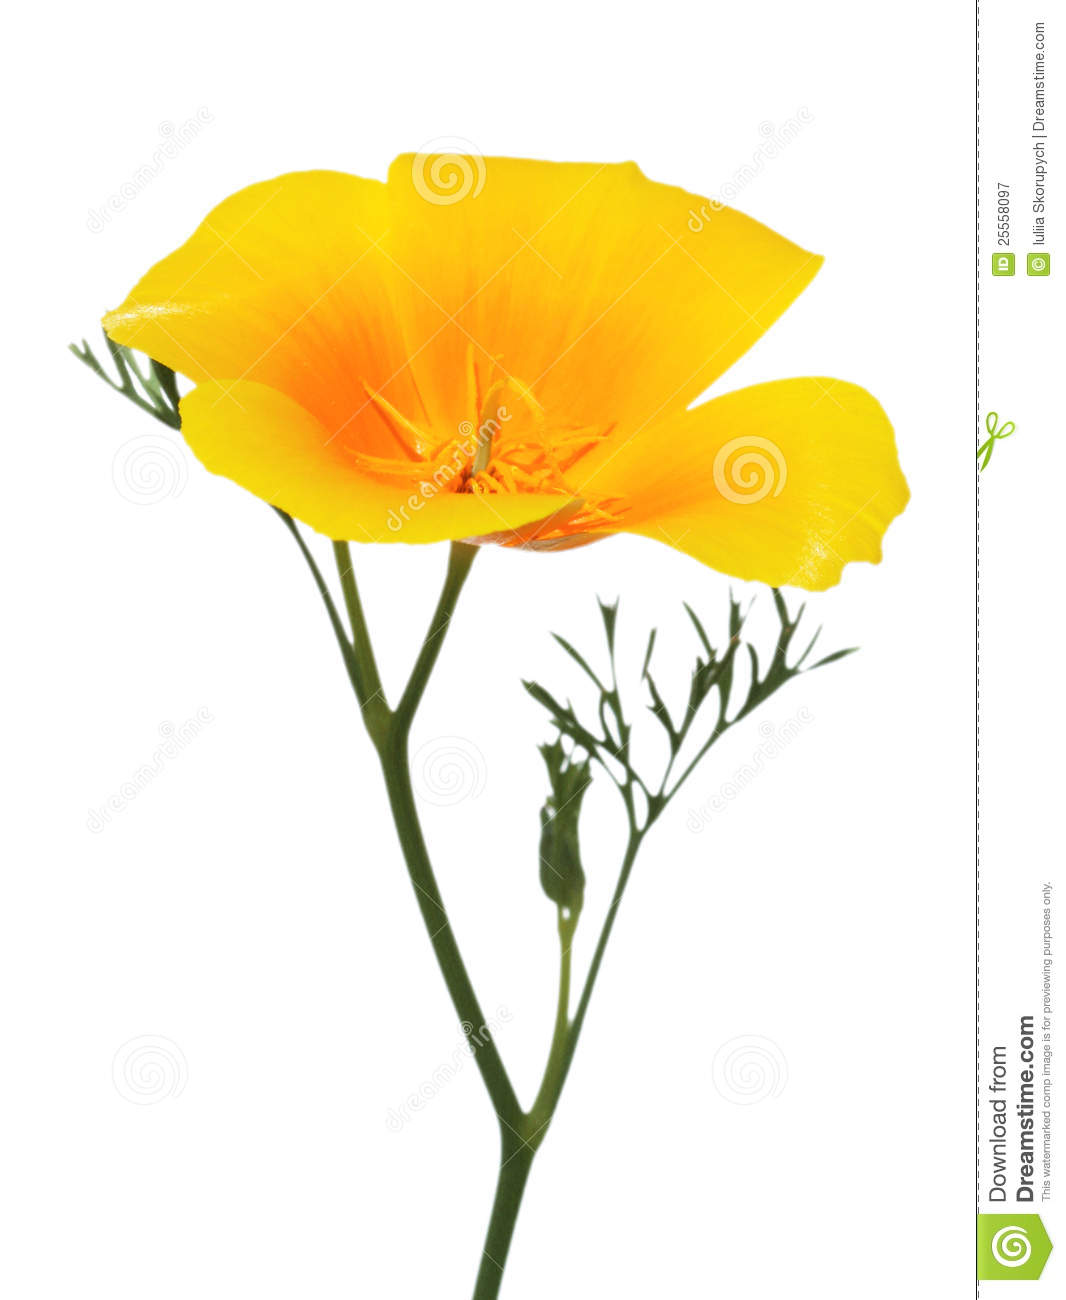 California state flower clipart image royalty free stock California Poppy Clipart - Clipart Kid image royalty free stock